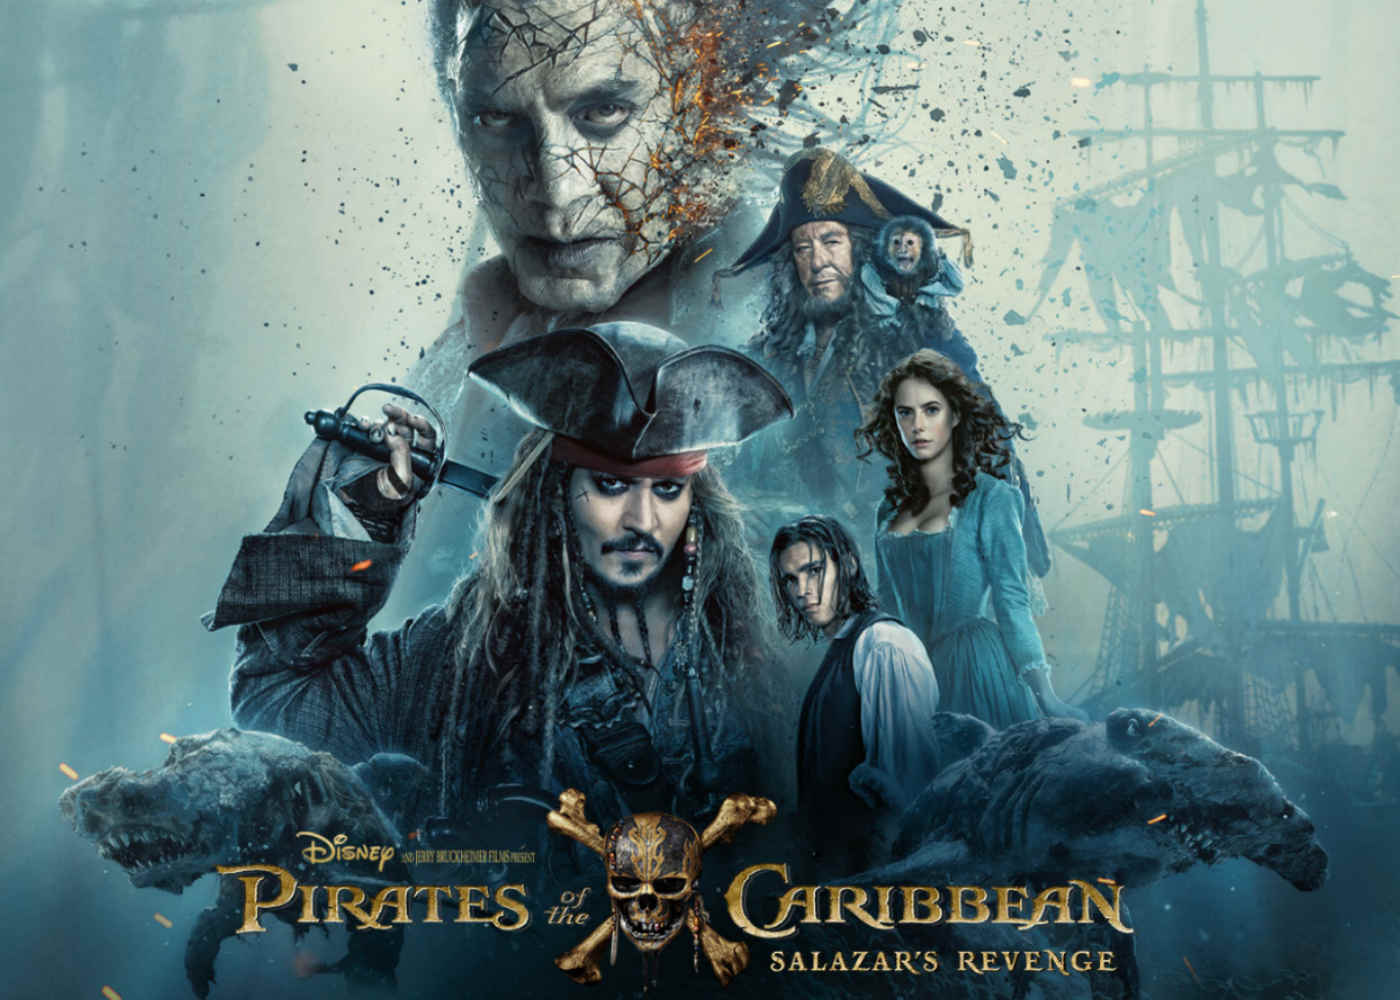 Review: Pirates of the Caribbean: Salazar's Revenge Steers Franchise to Safer Waters